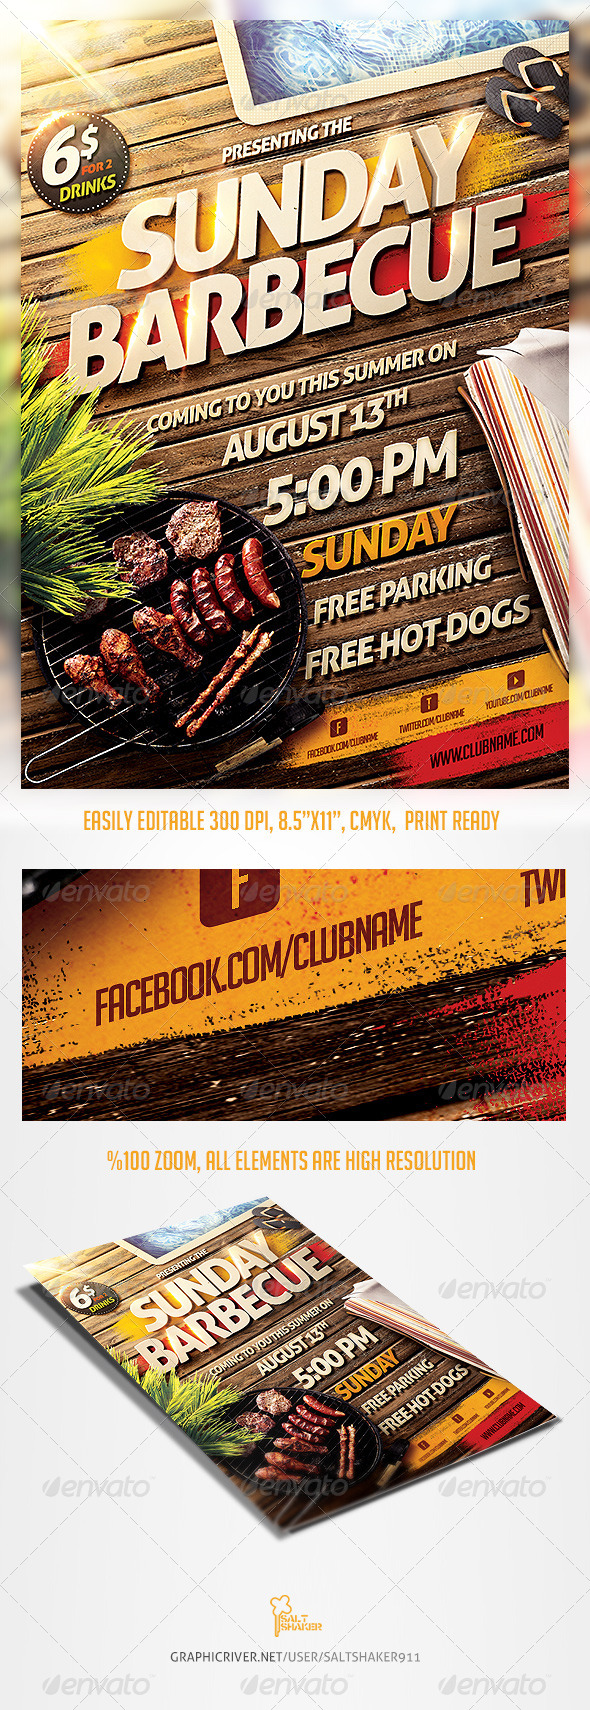 Barbecue Bbq Party Flyer Template By Saltshaker911 Graphicriver